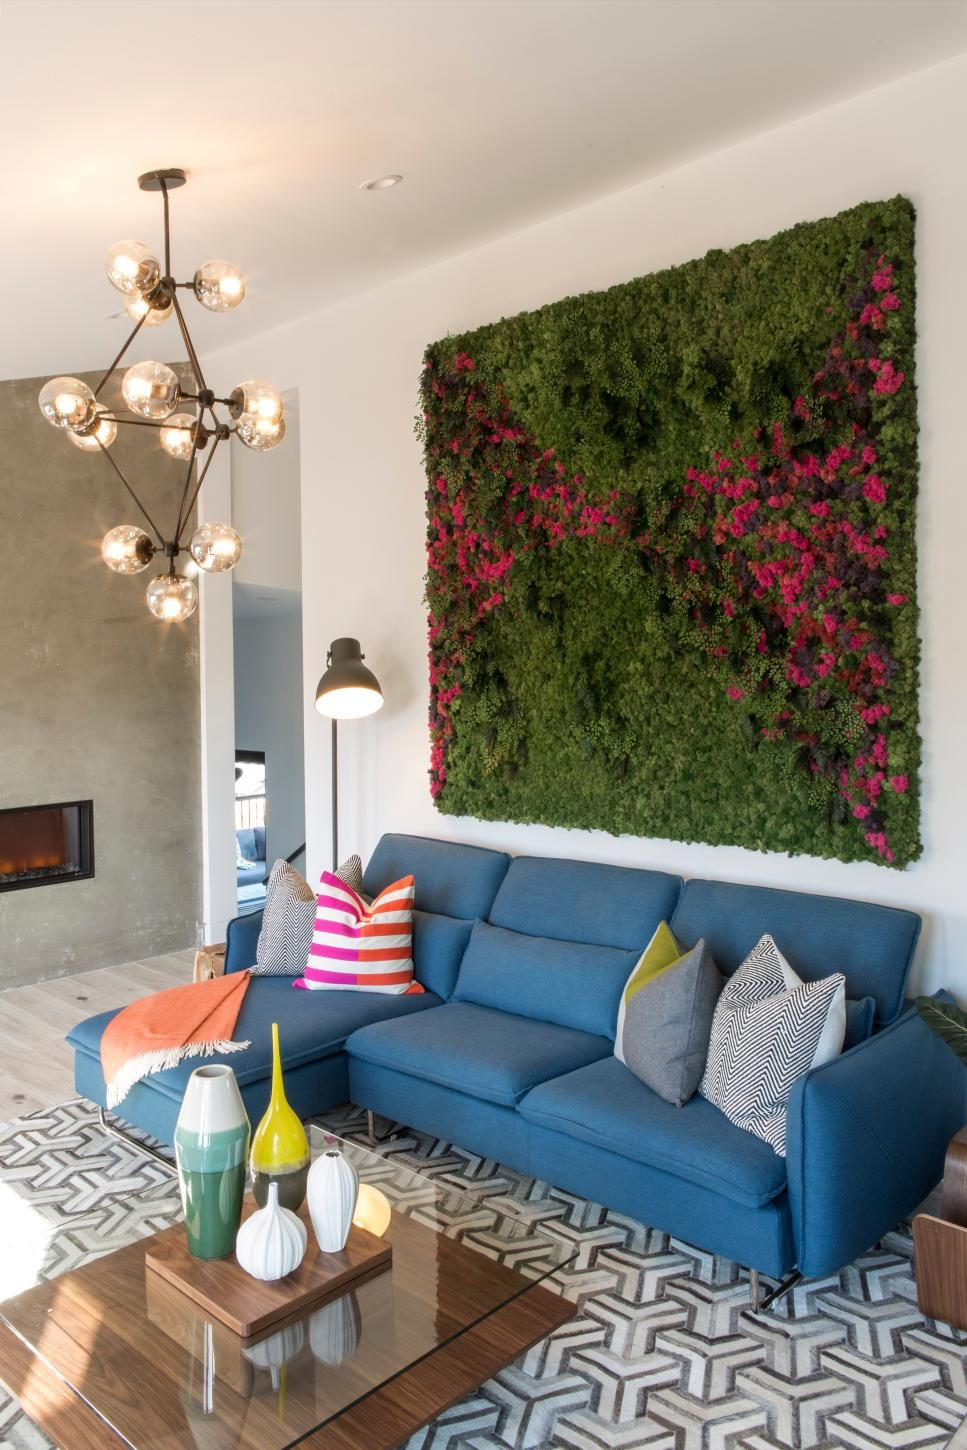 Brother Vs Brother San Francisco The Living Room Challenge Brother Vs Brother On Hgtv Hgtv Dream Living Rooms Family Room Living Wall Indoor